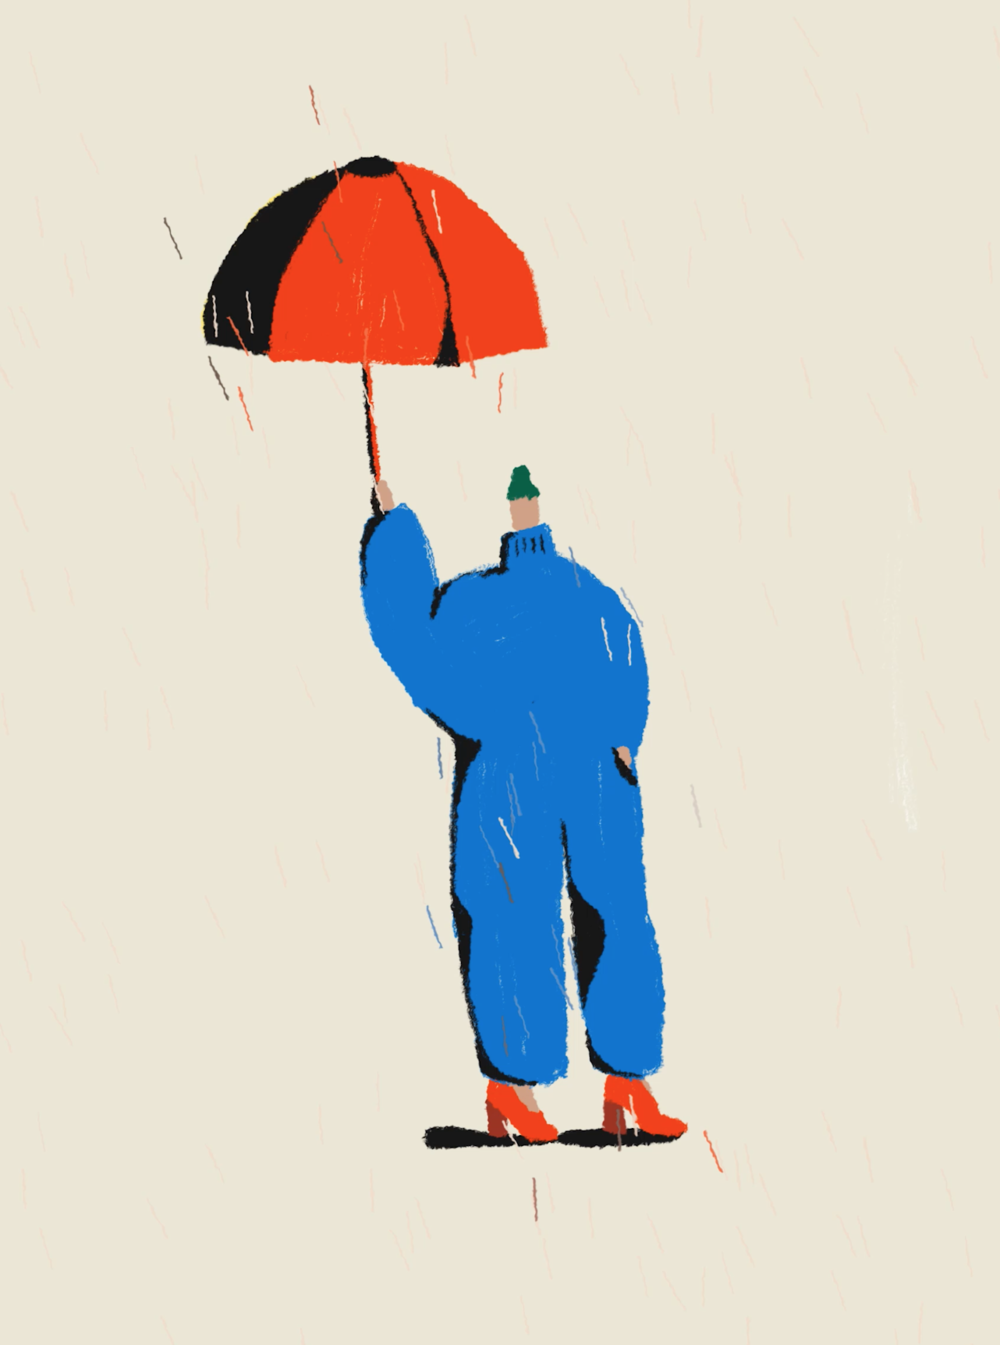 Rain [umbrella] - animation by Sharon Harris